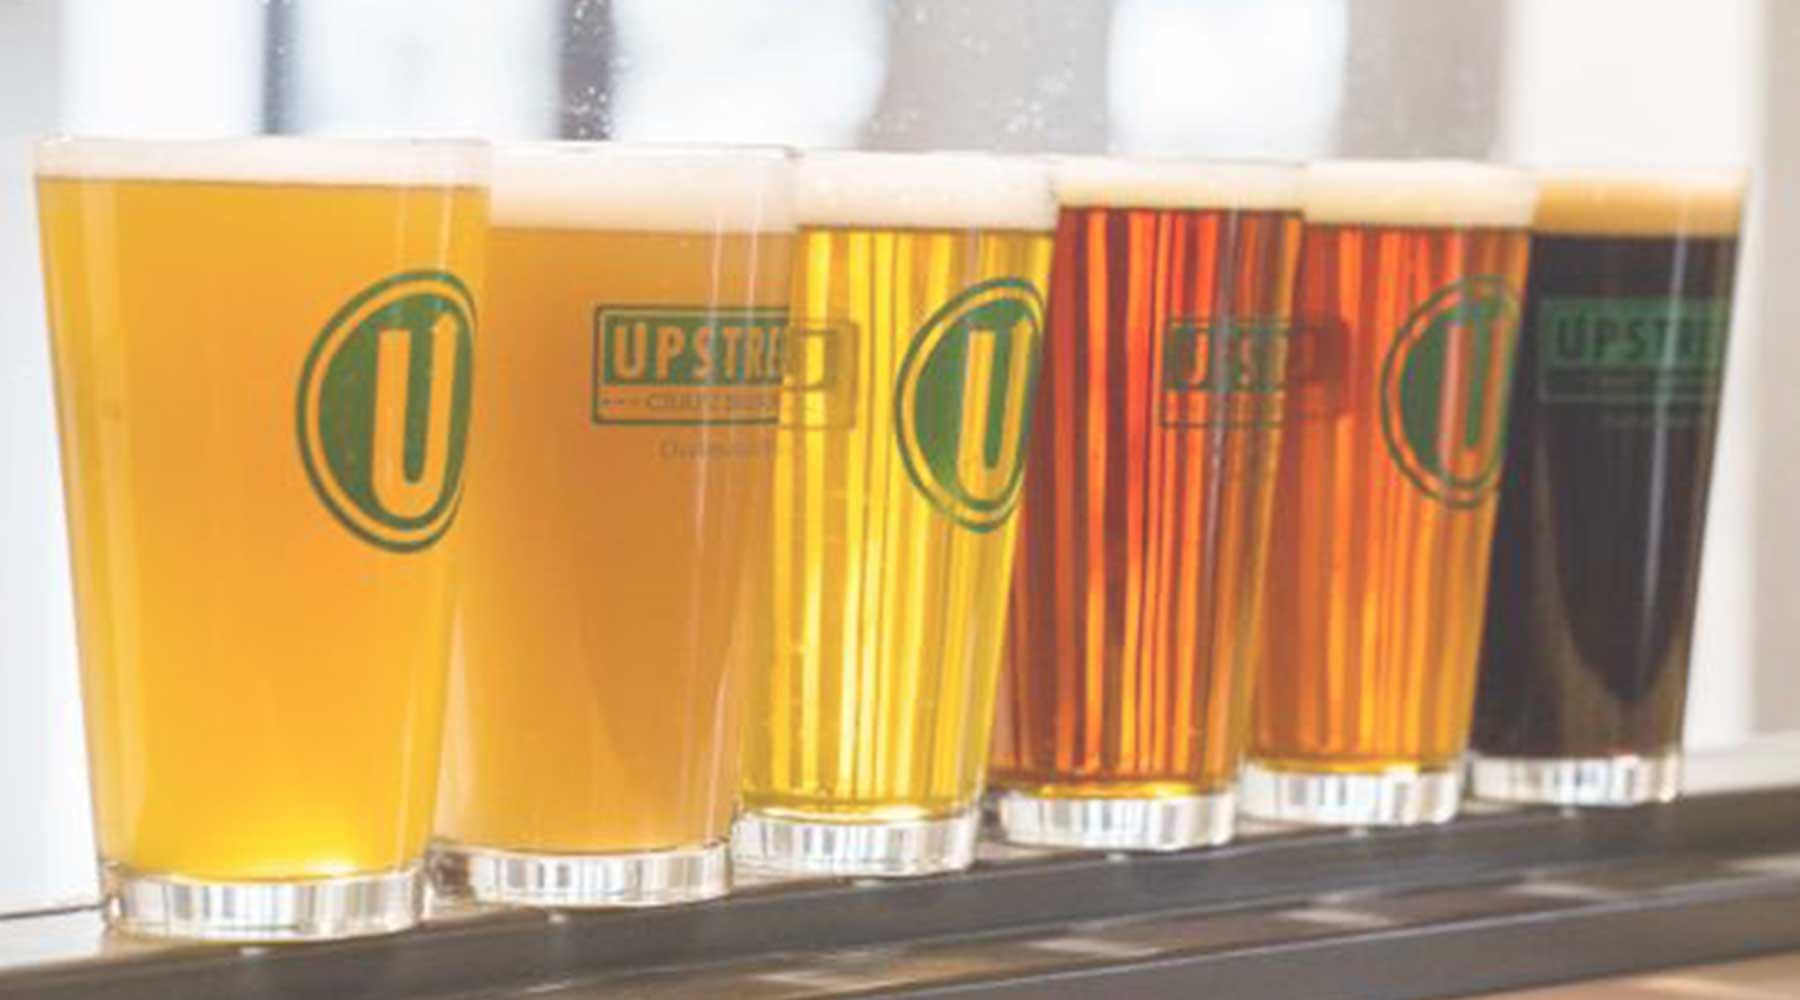 Upstreet Craft Brewing | Just Wine